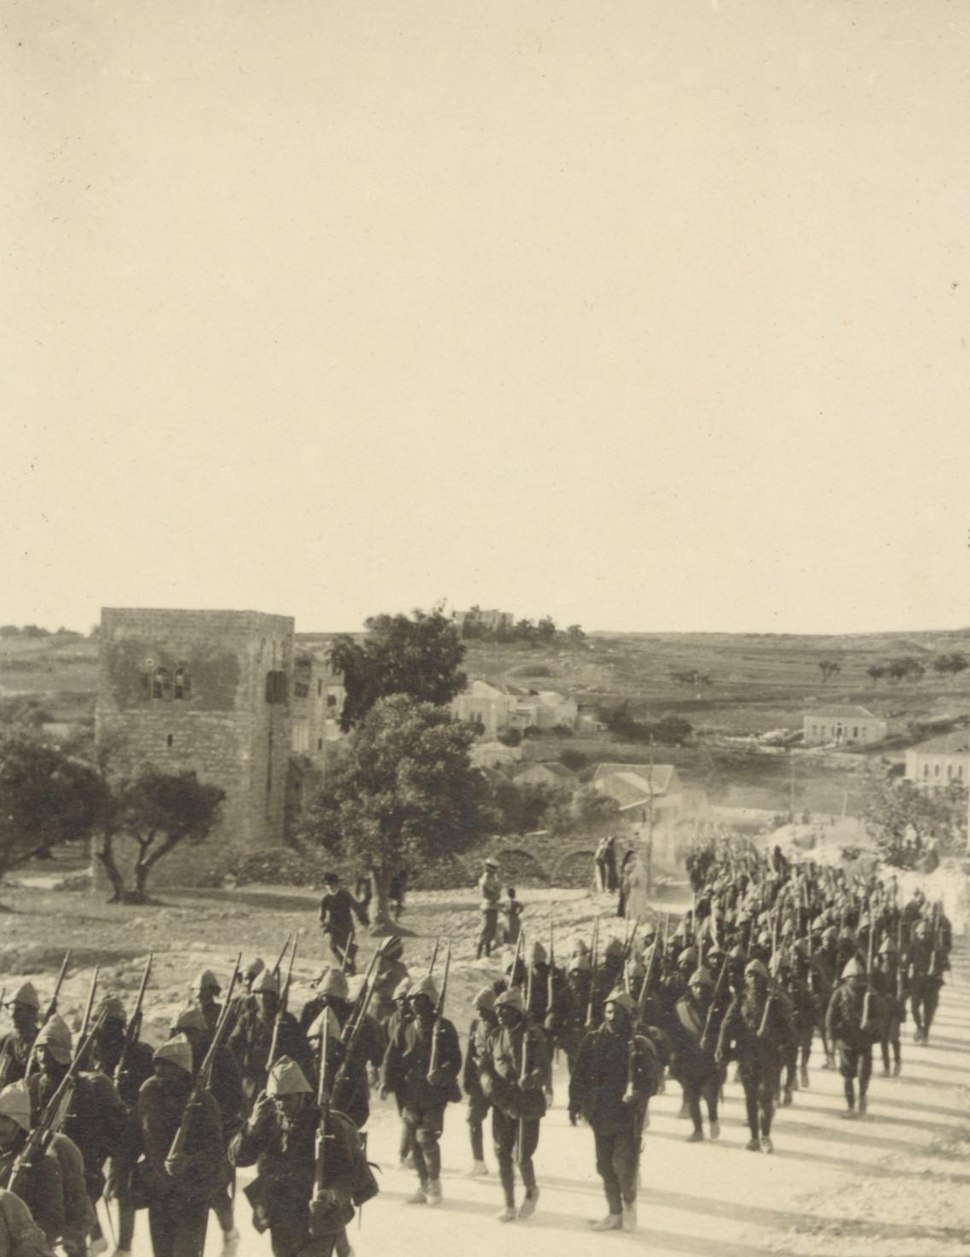 Turkish troops en route to the Suez Canal, 1914